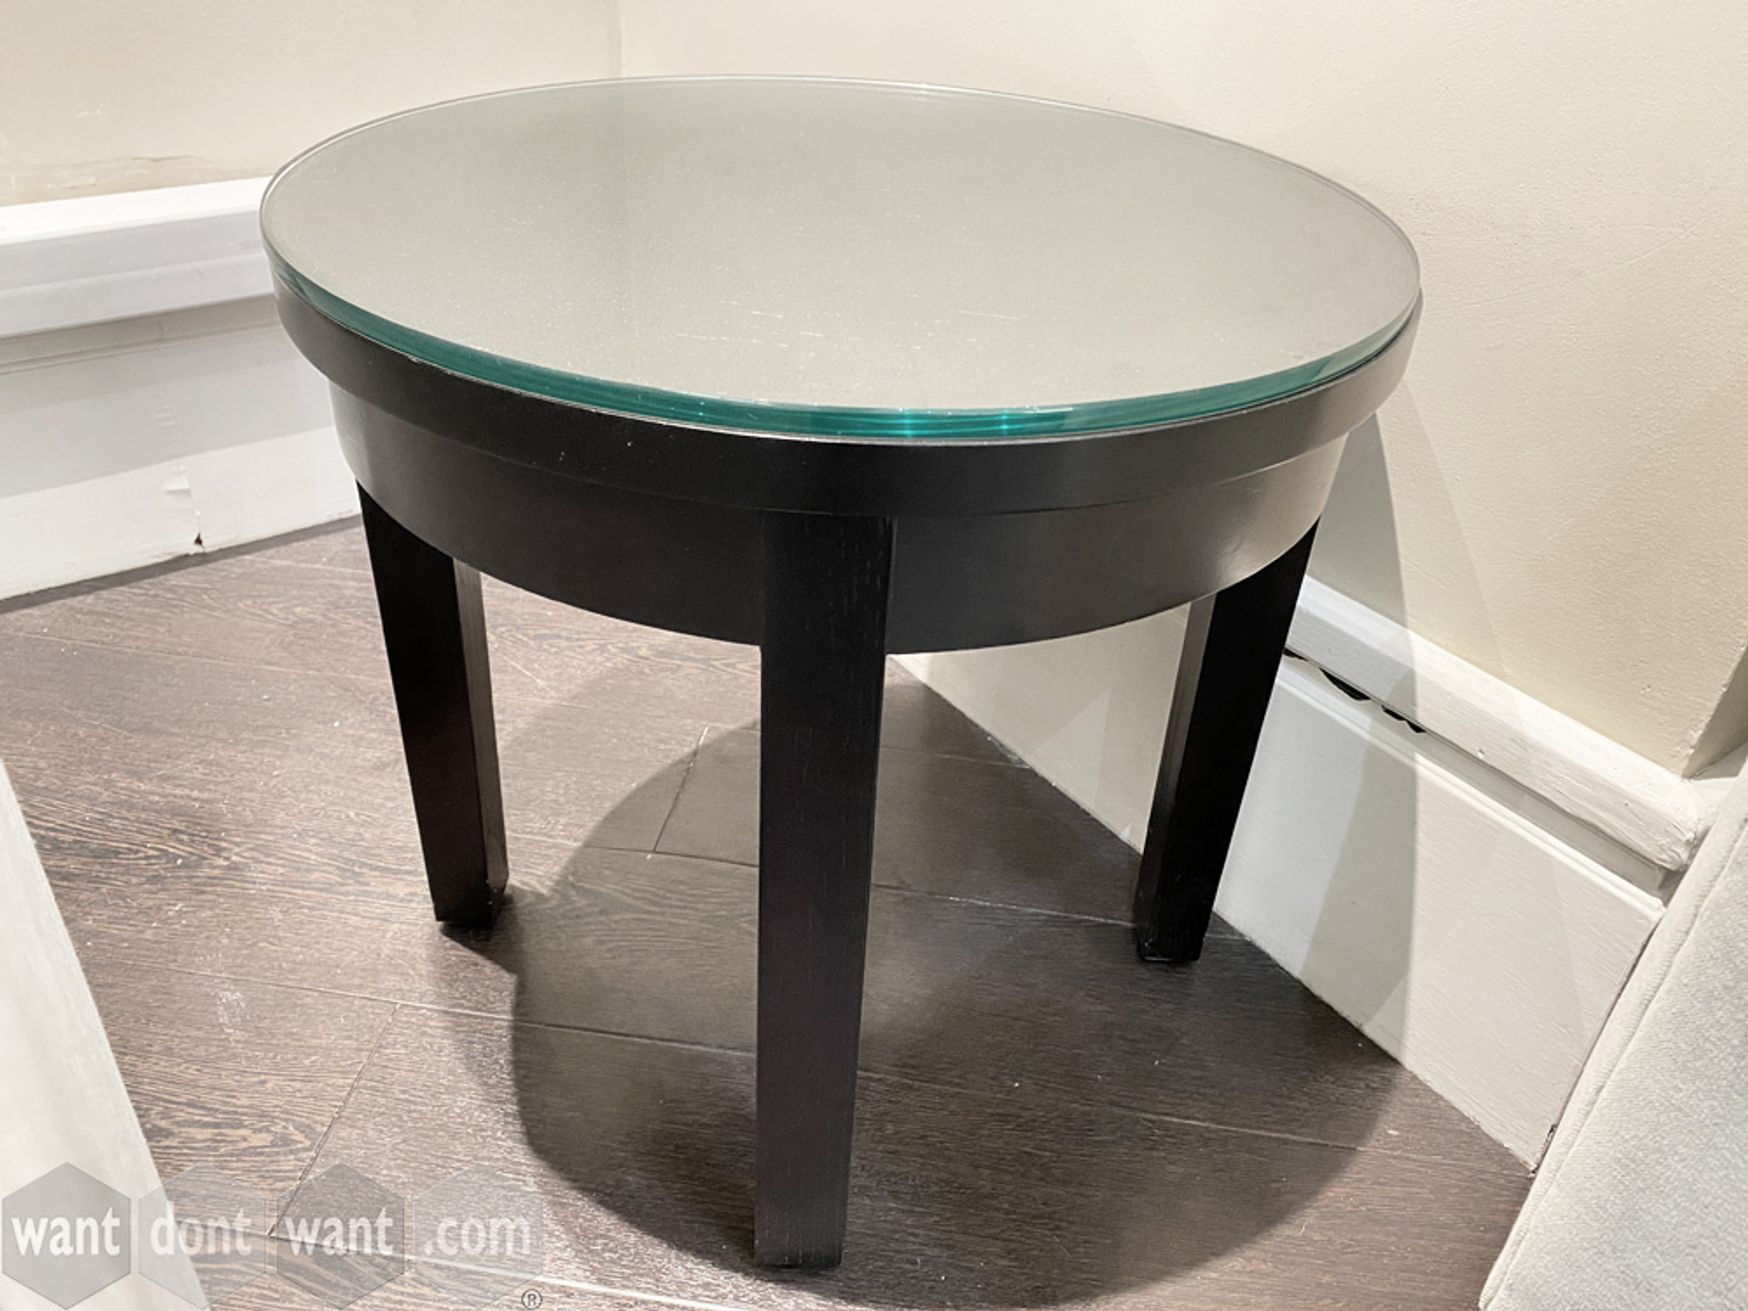 Used circular side table in dark mahogany finish with glass top